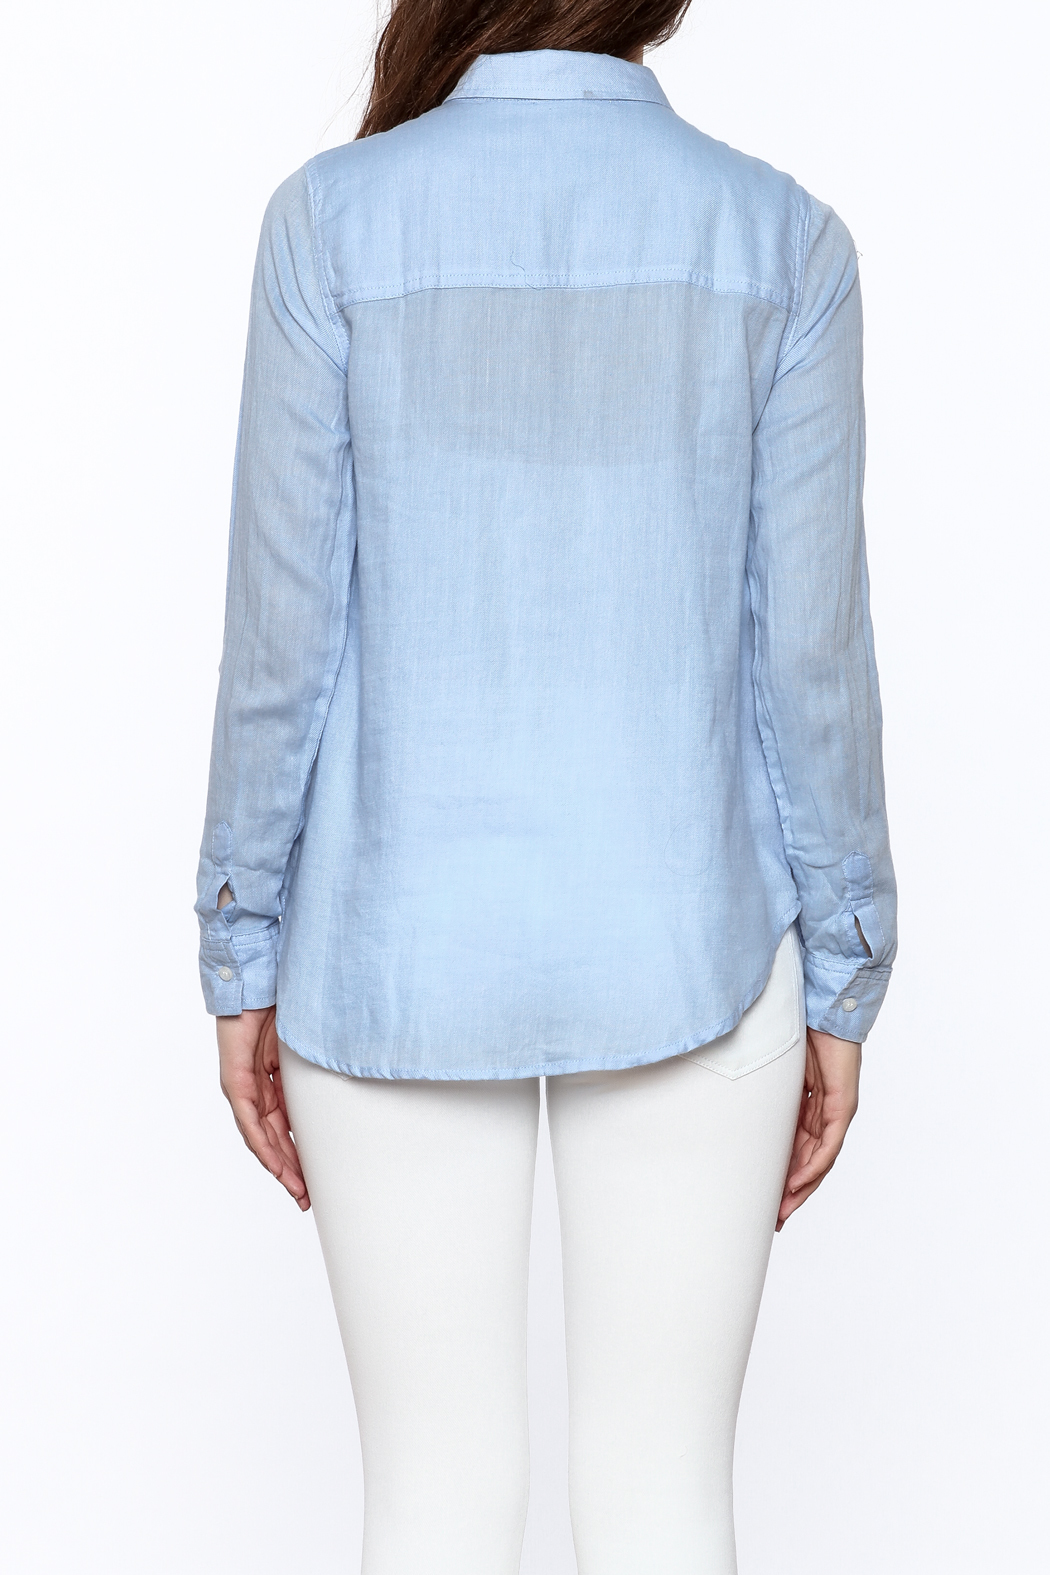 Staccato Light Blue Button Down - Back Cropped Image